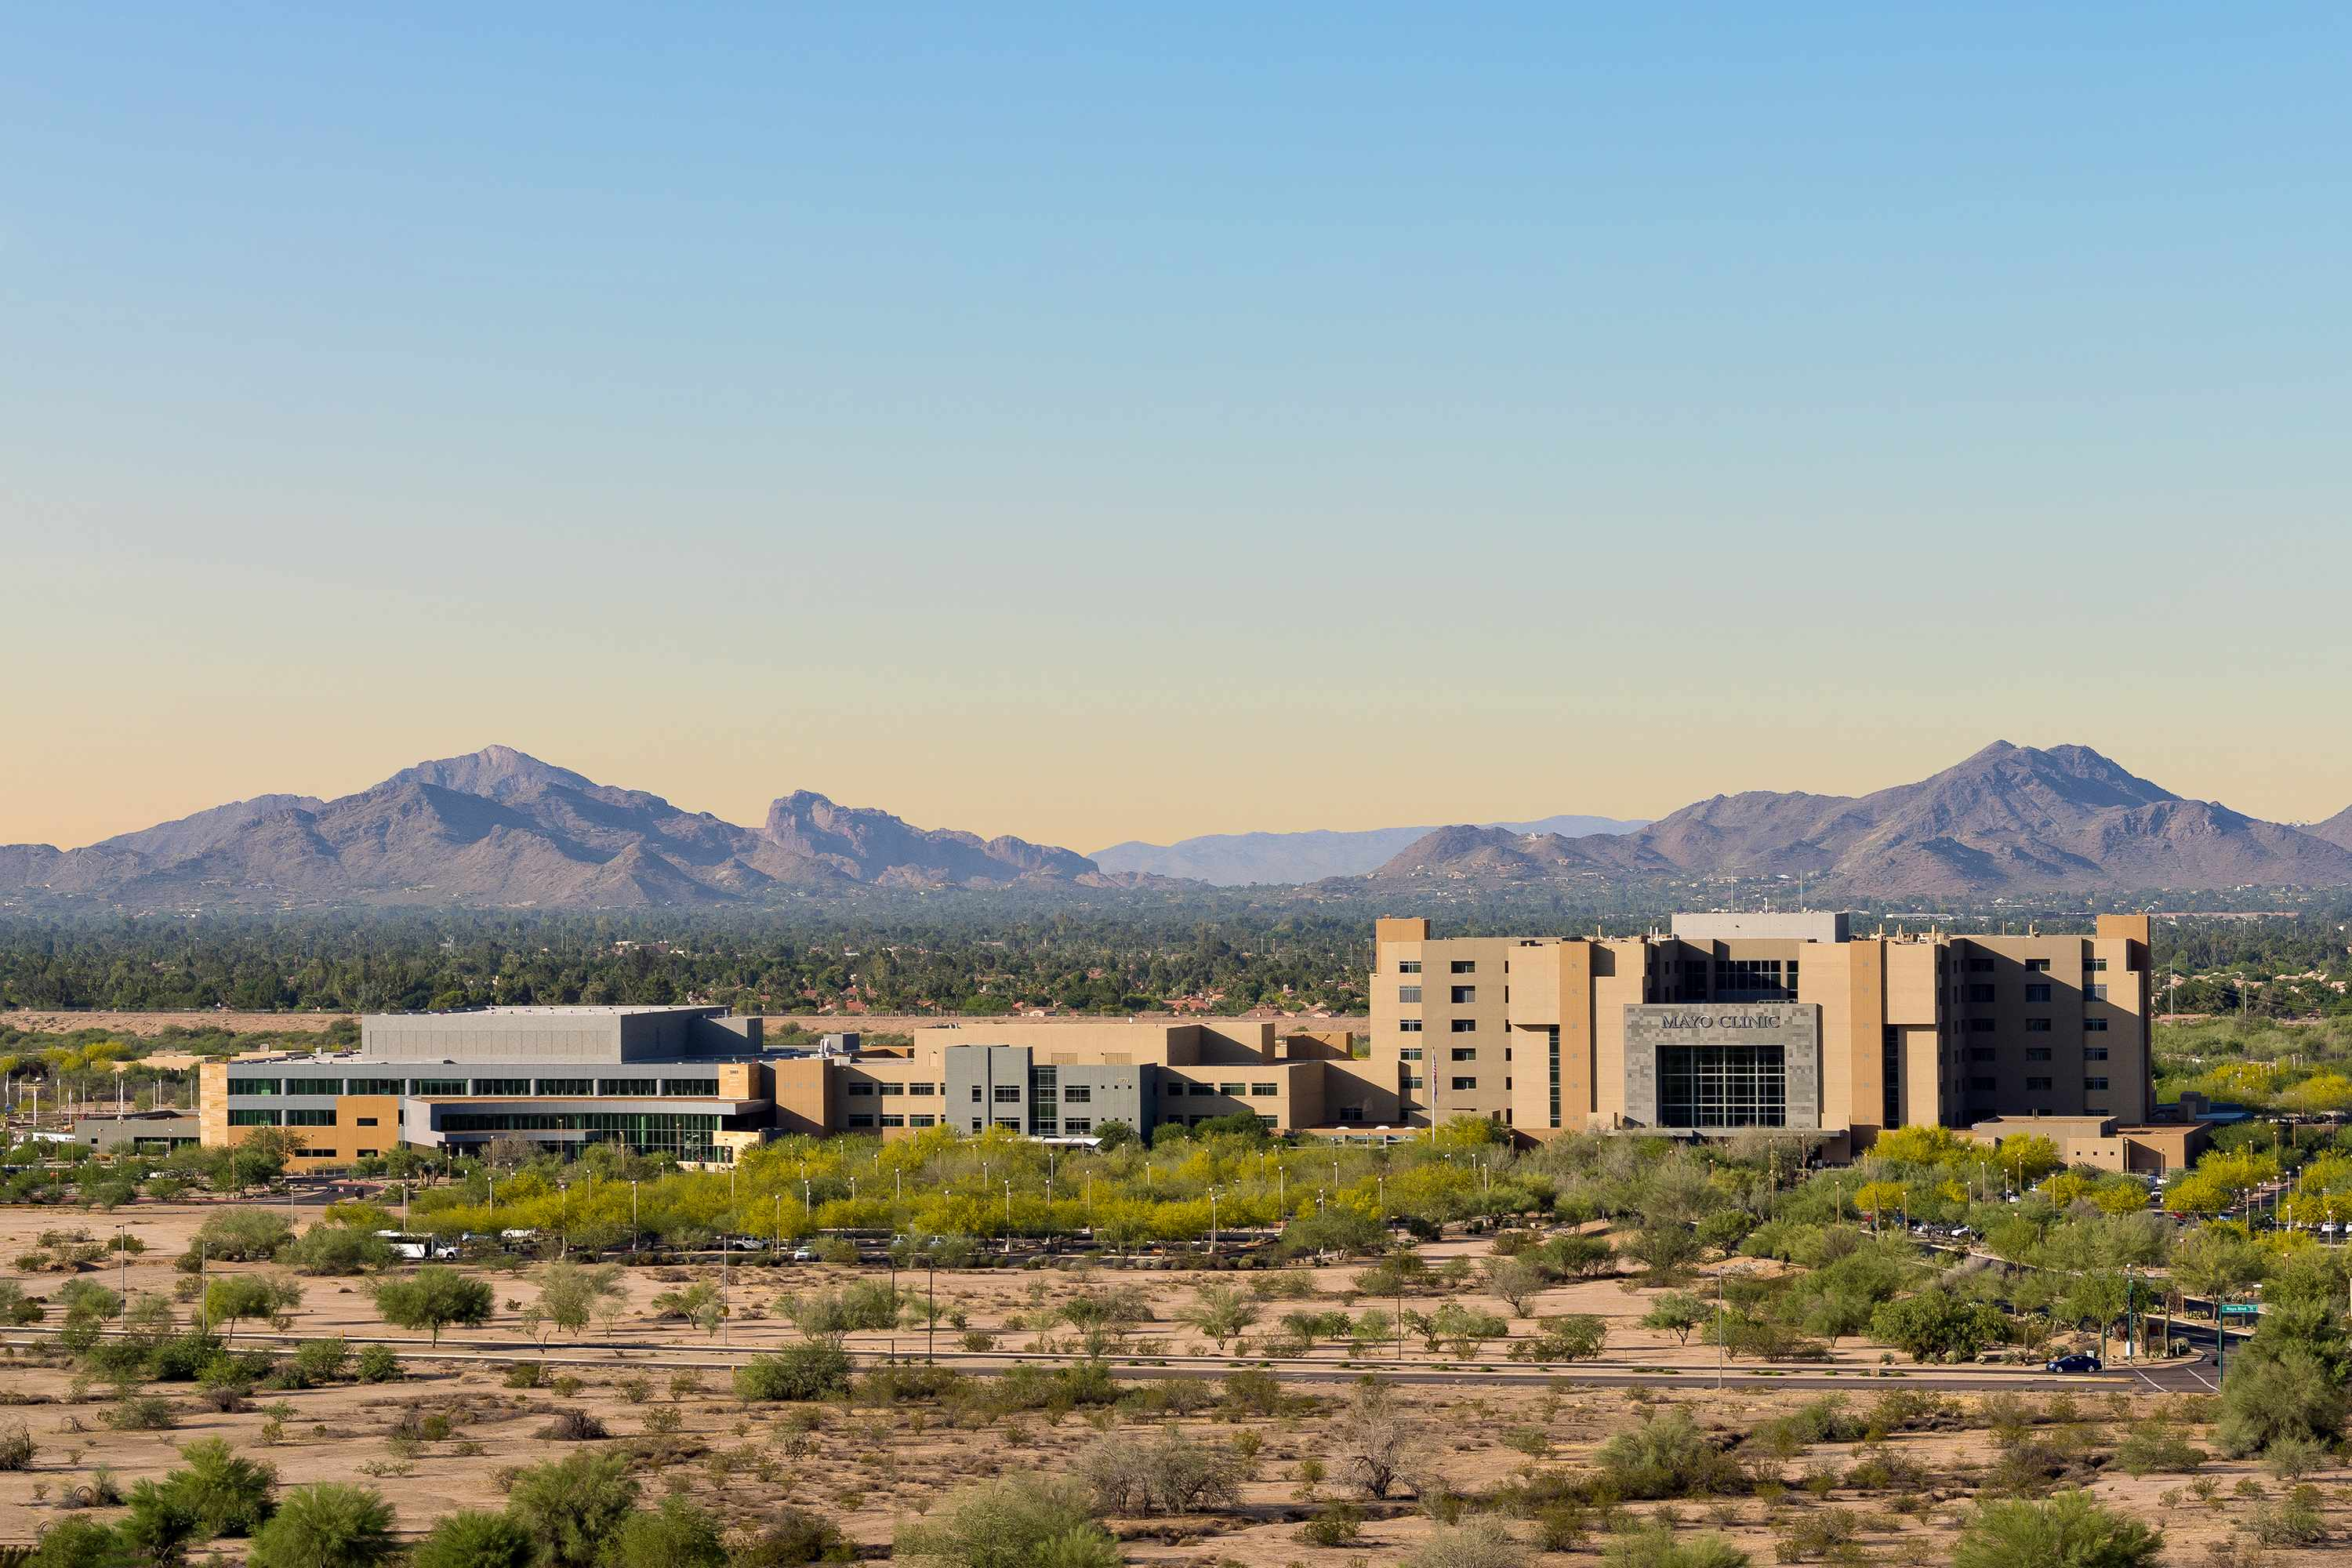 Mayo Clinic's Arizona campus